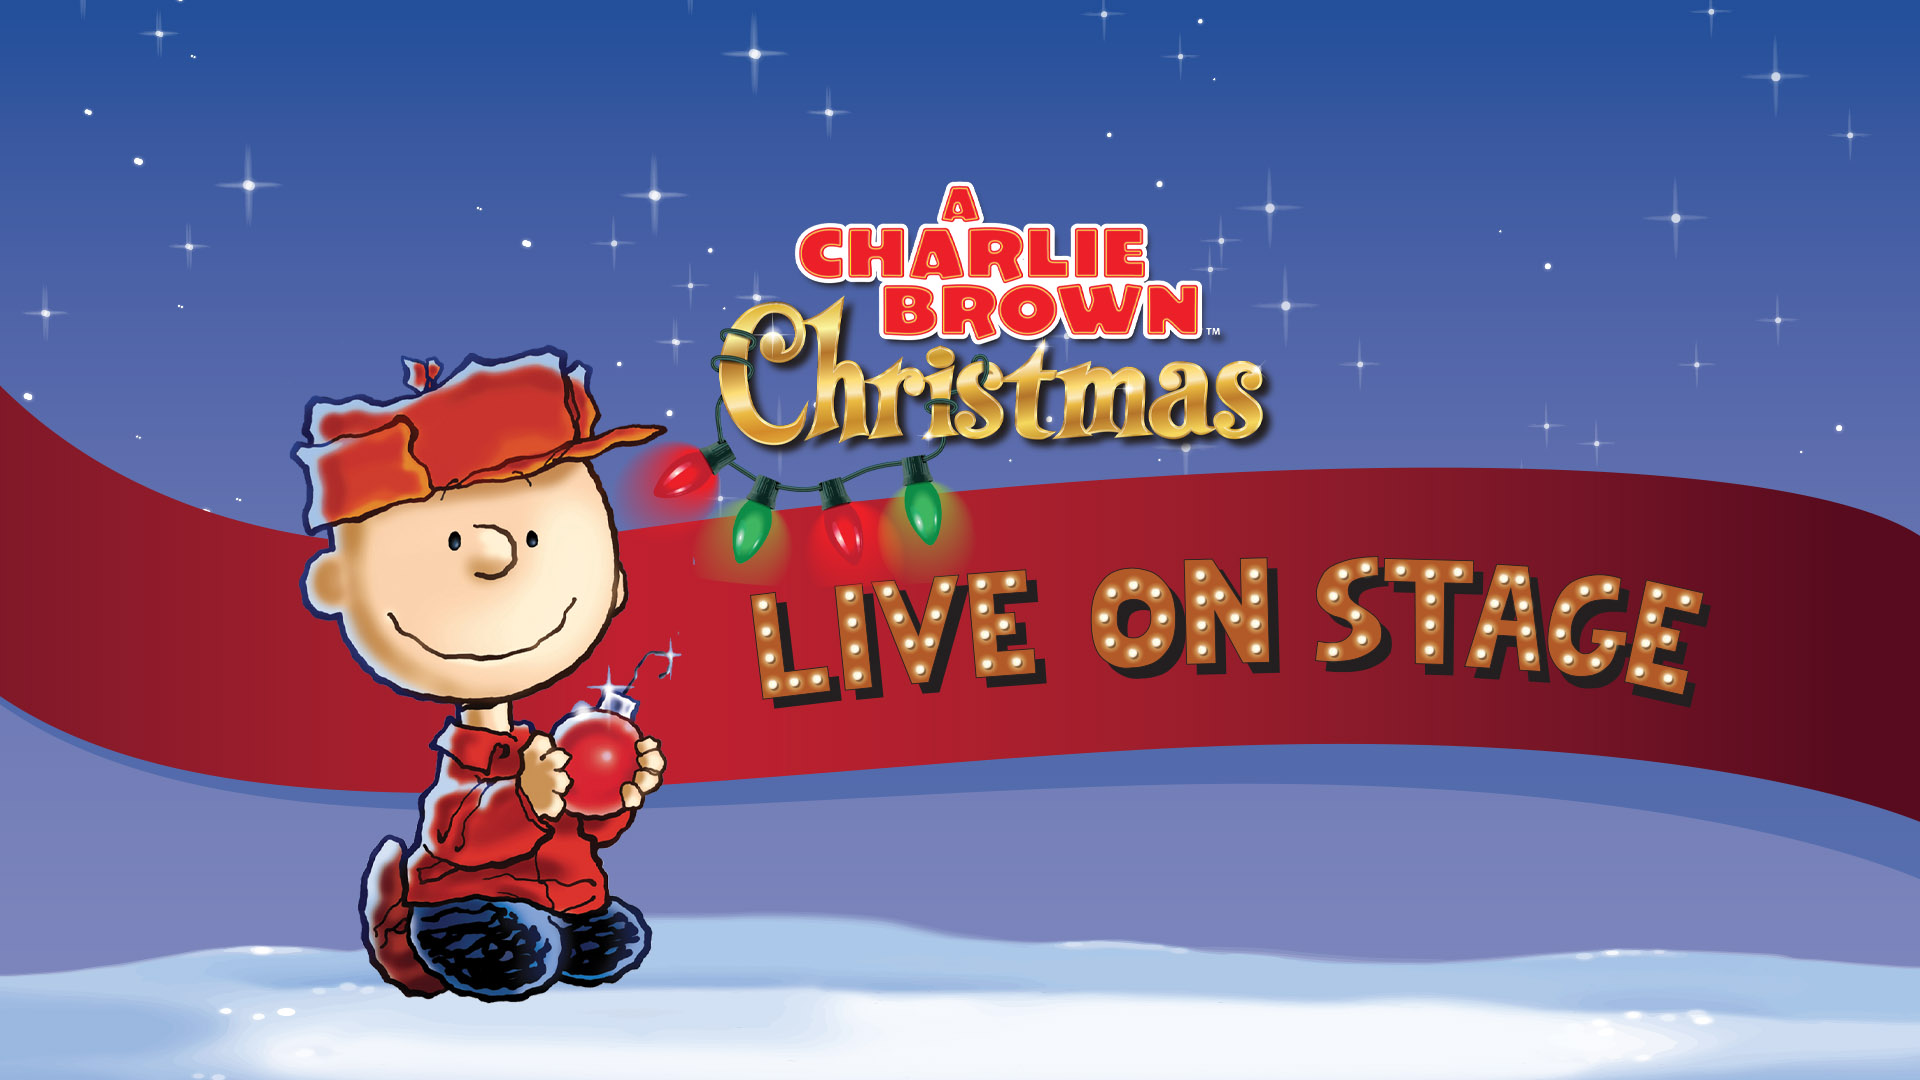 charlie brown christmas, holiday show, tysons, capital one hall, things to do, capital one center, family show